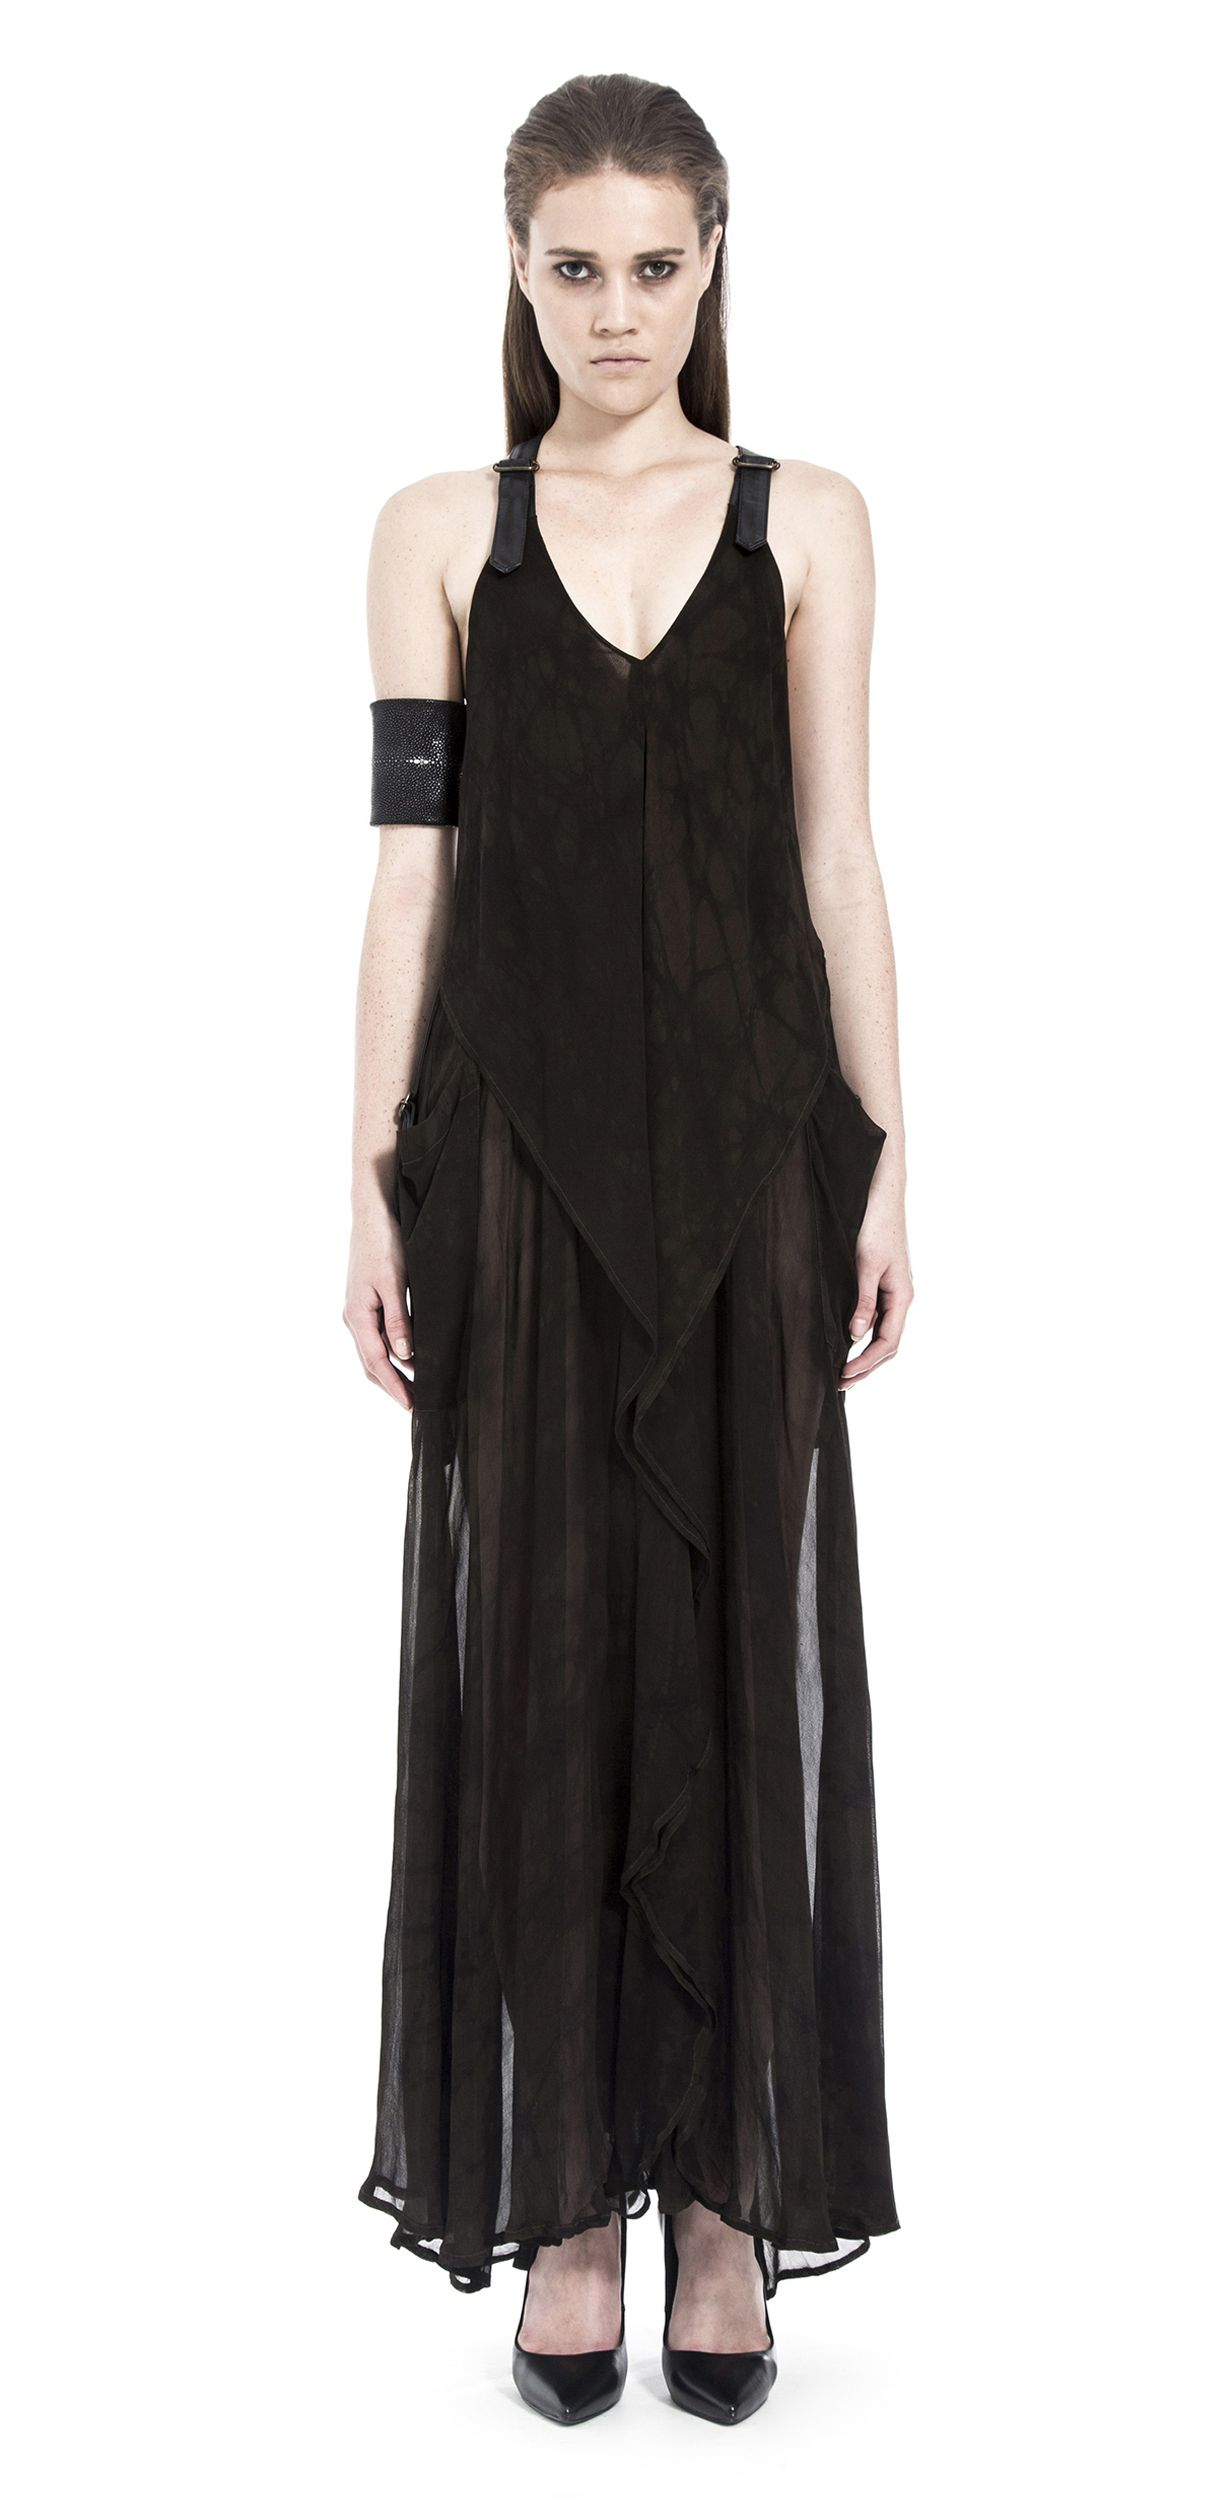 Prepare to experience power and luxury in this long, light weight dress.